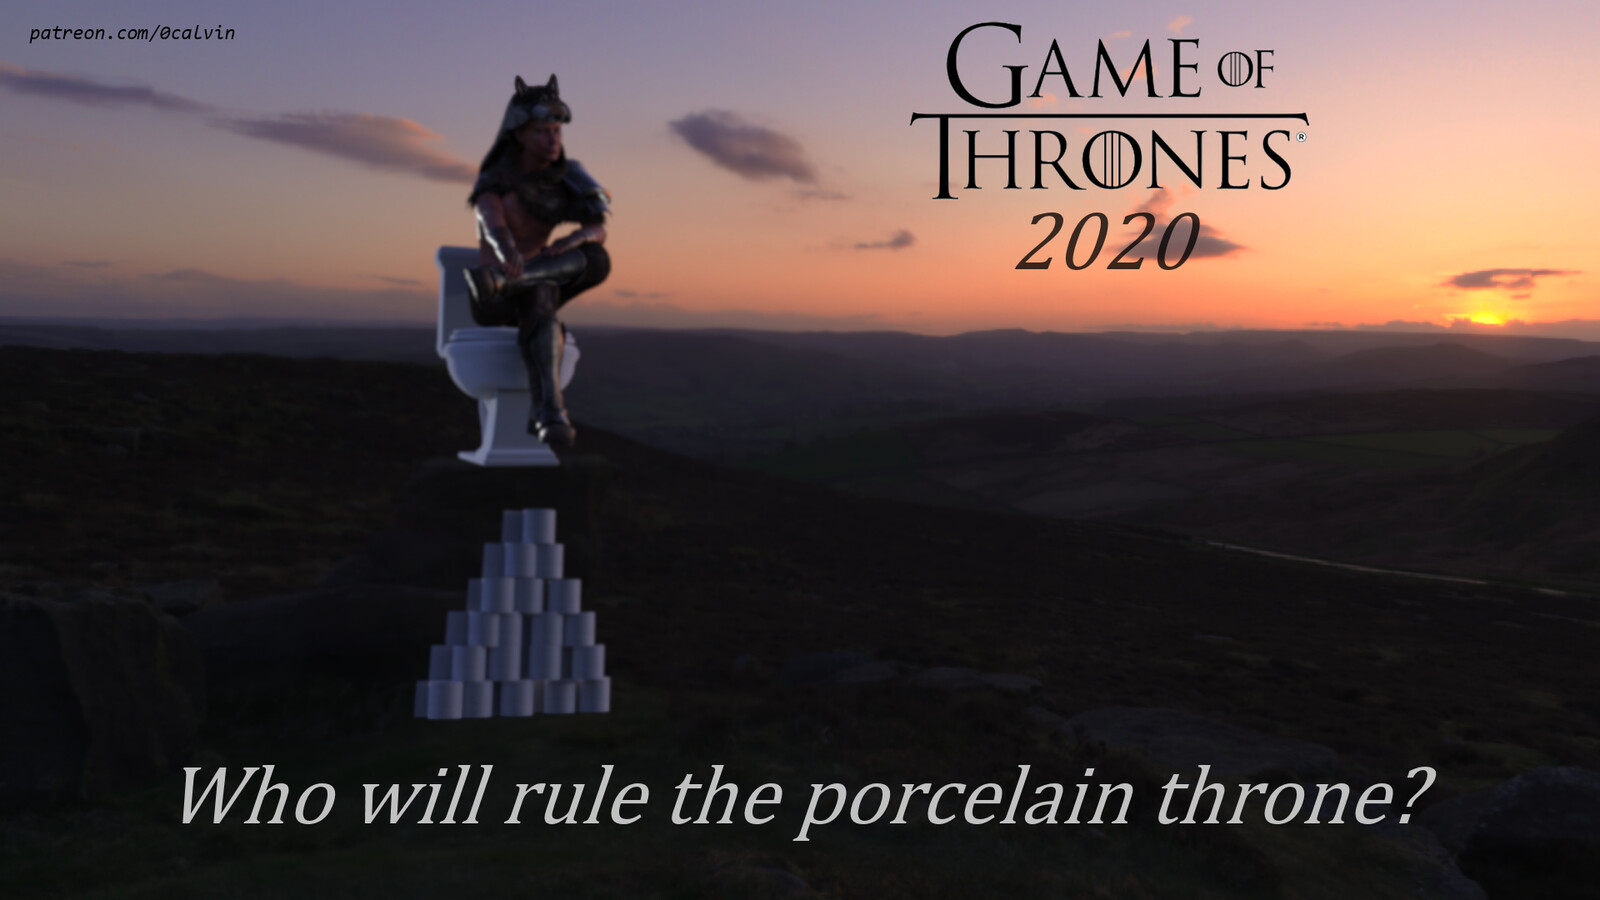 Who will rule the porcelain throne?